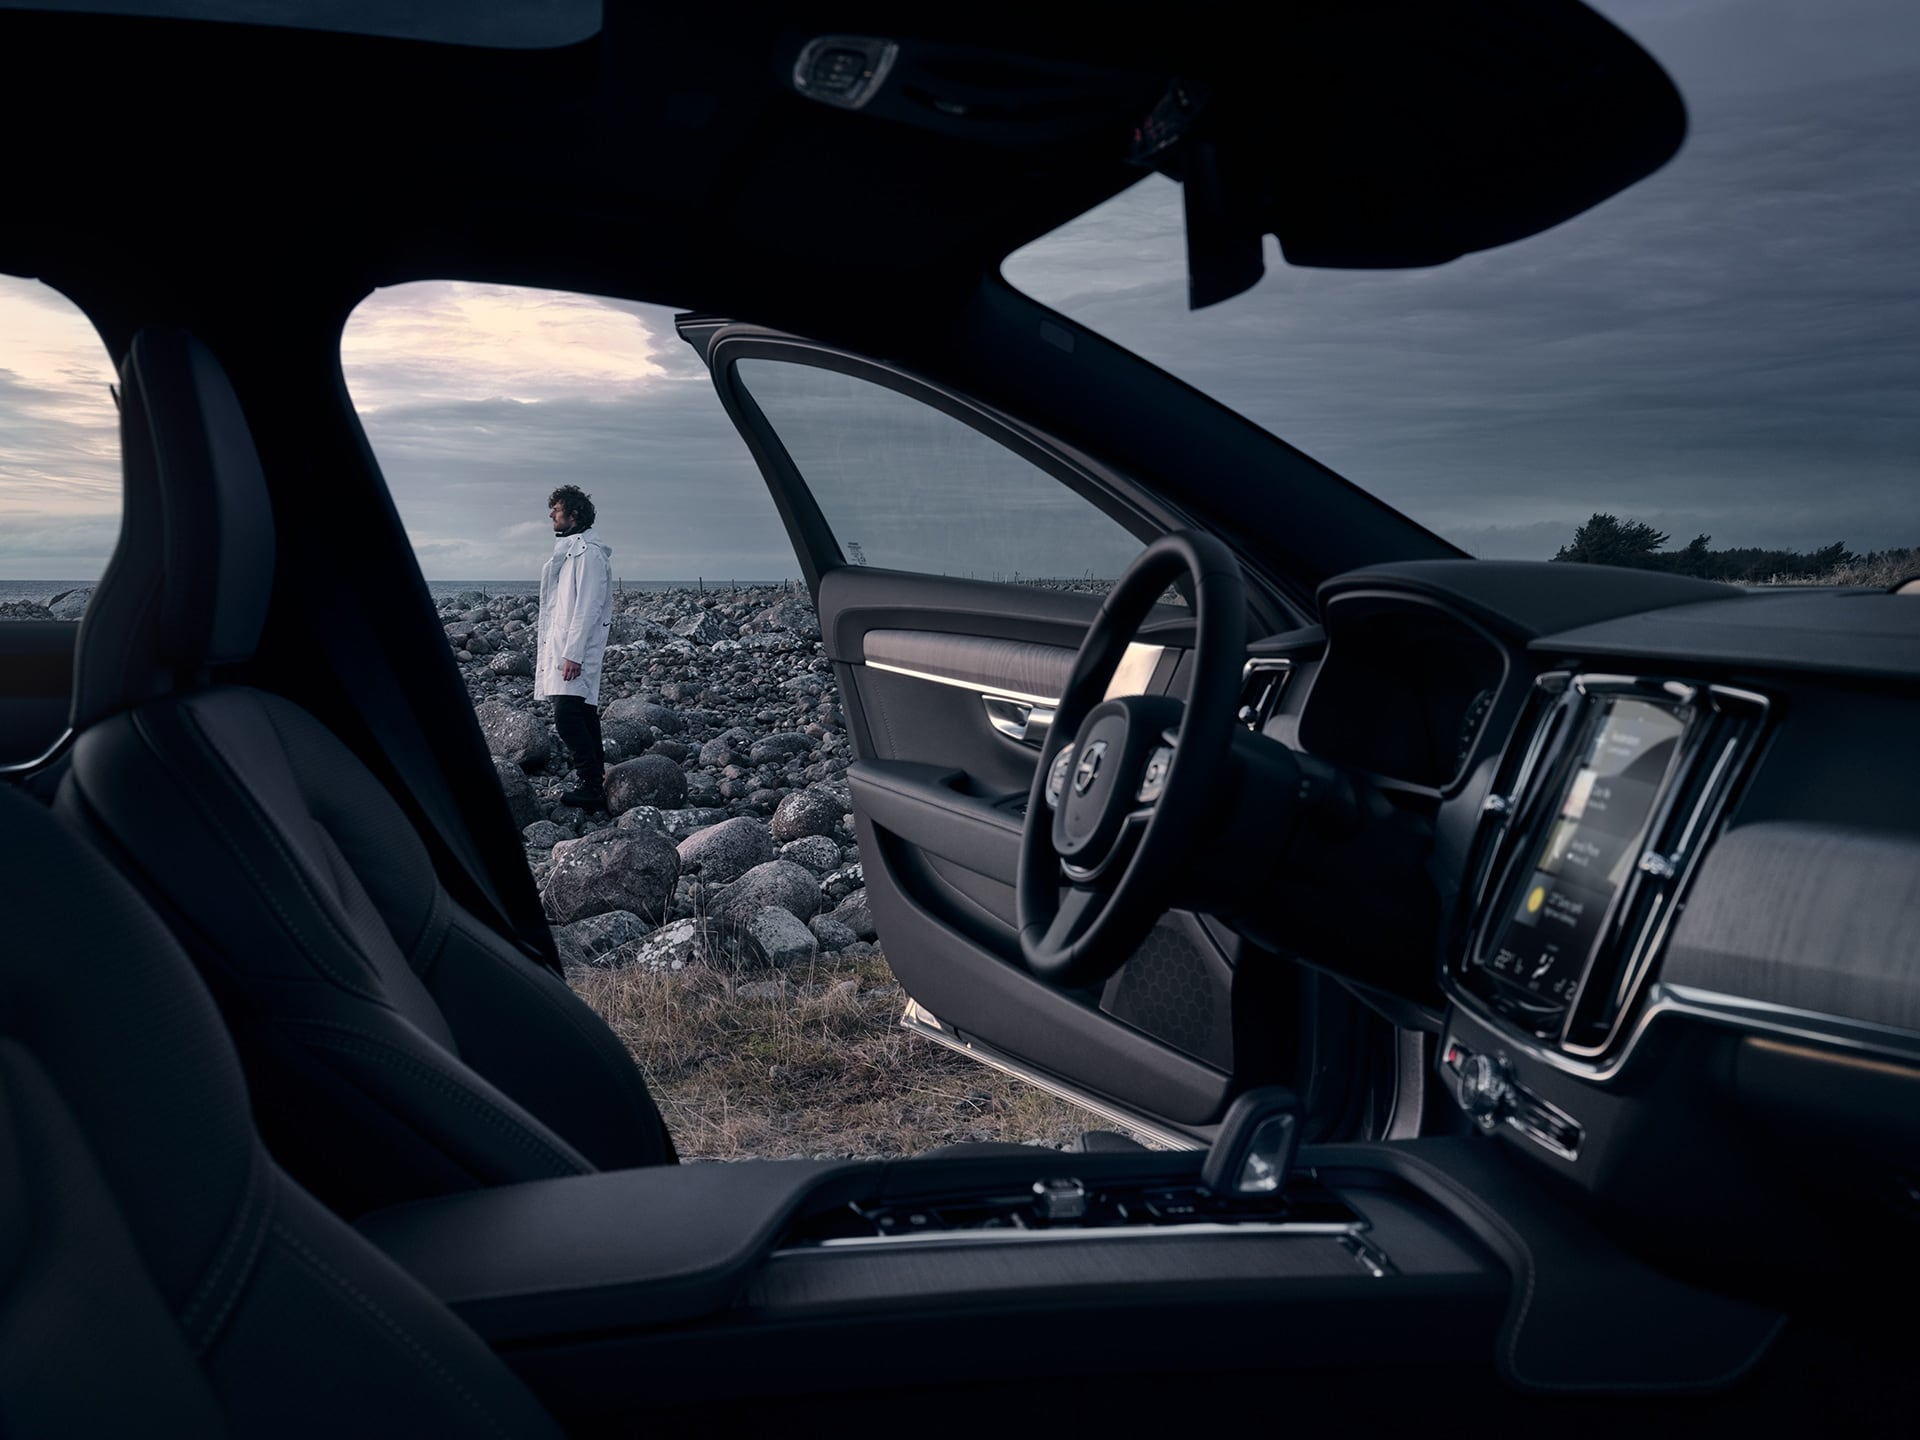 Inside a V90 Cross Country with black interior, a man is standing outside